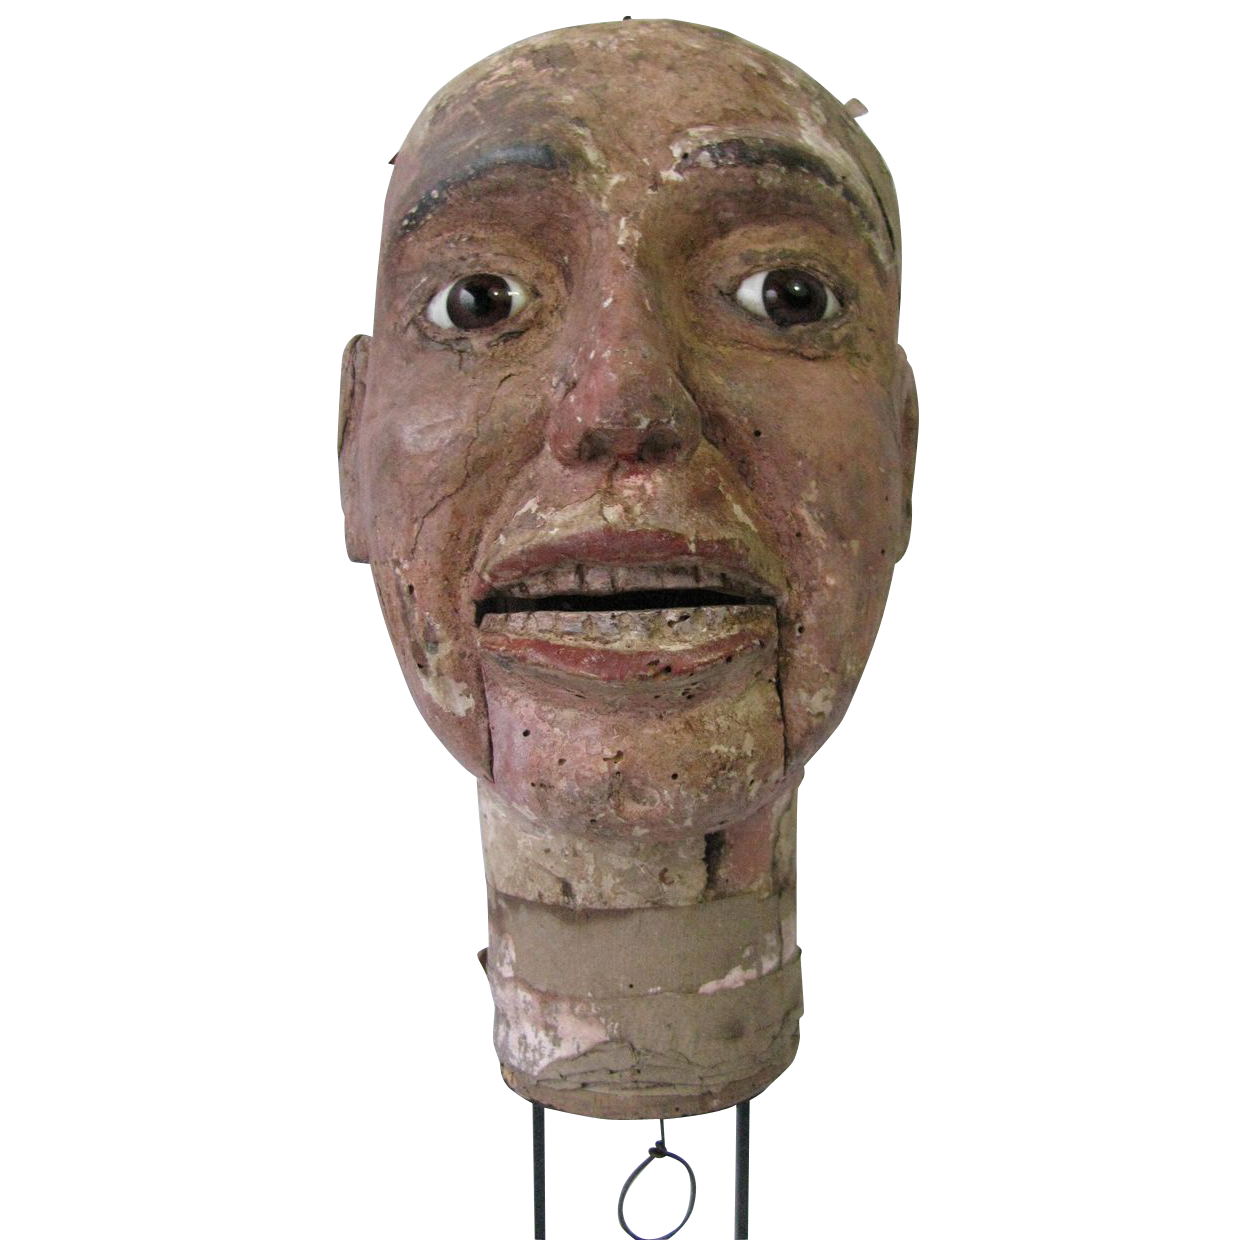 Ventriloquist Dummy Head